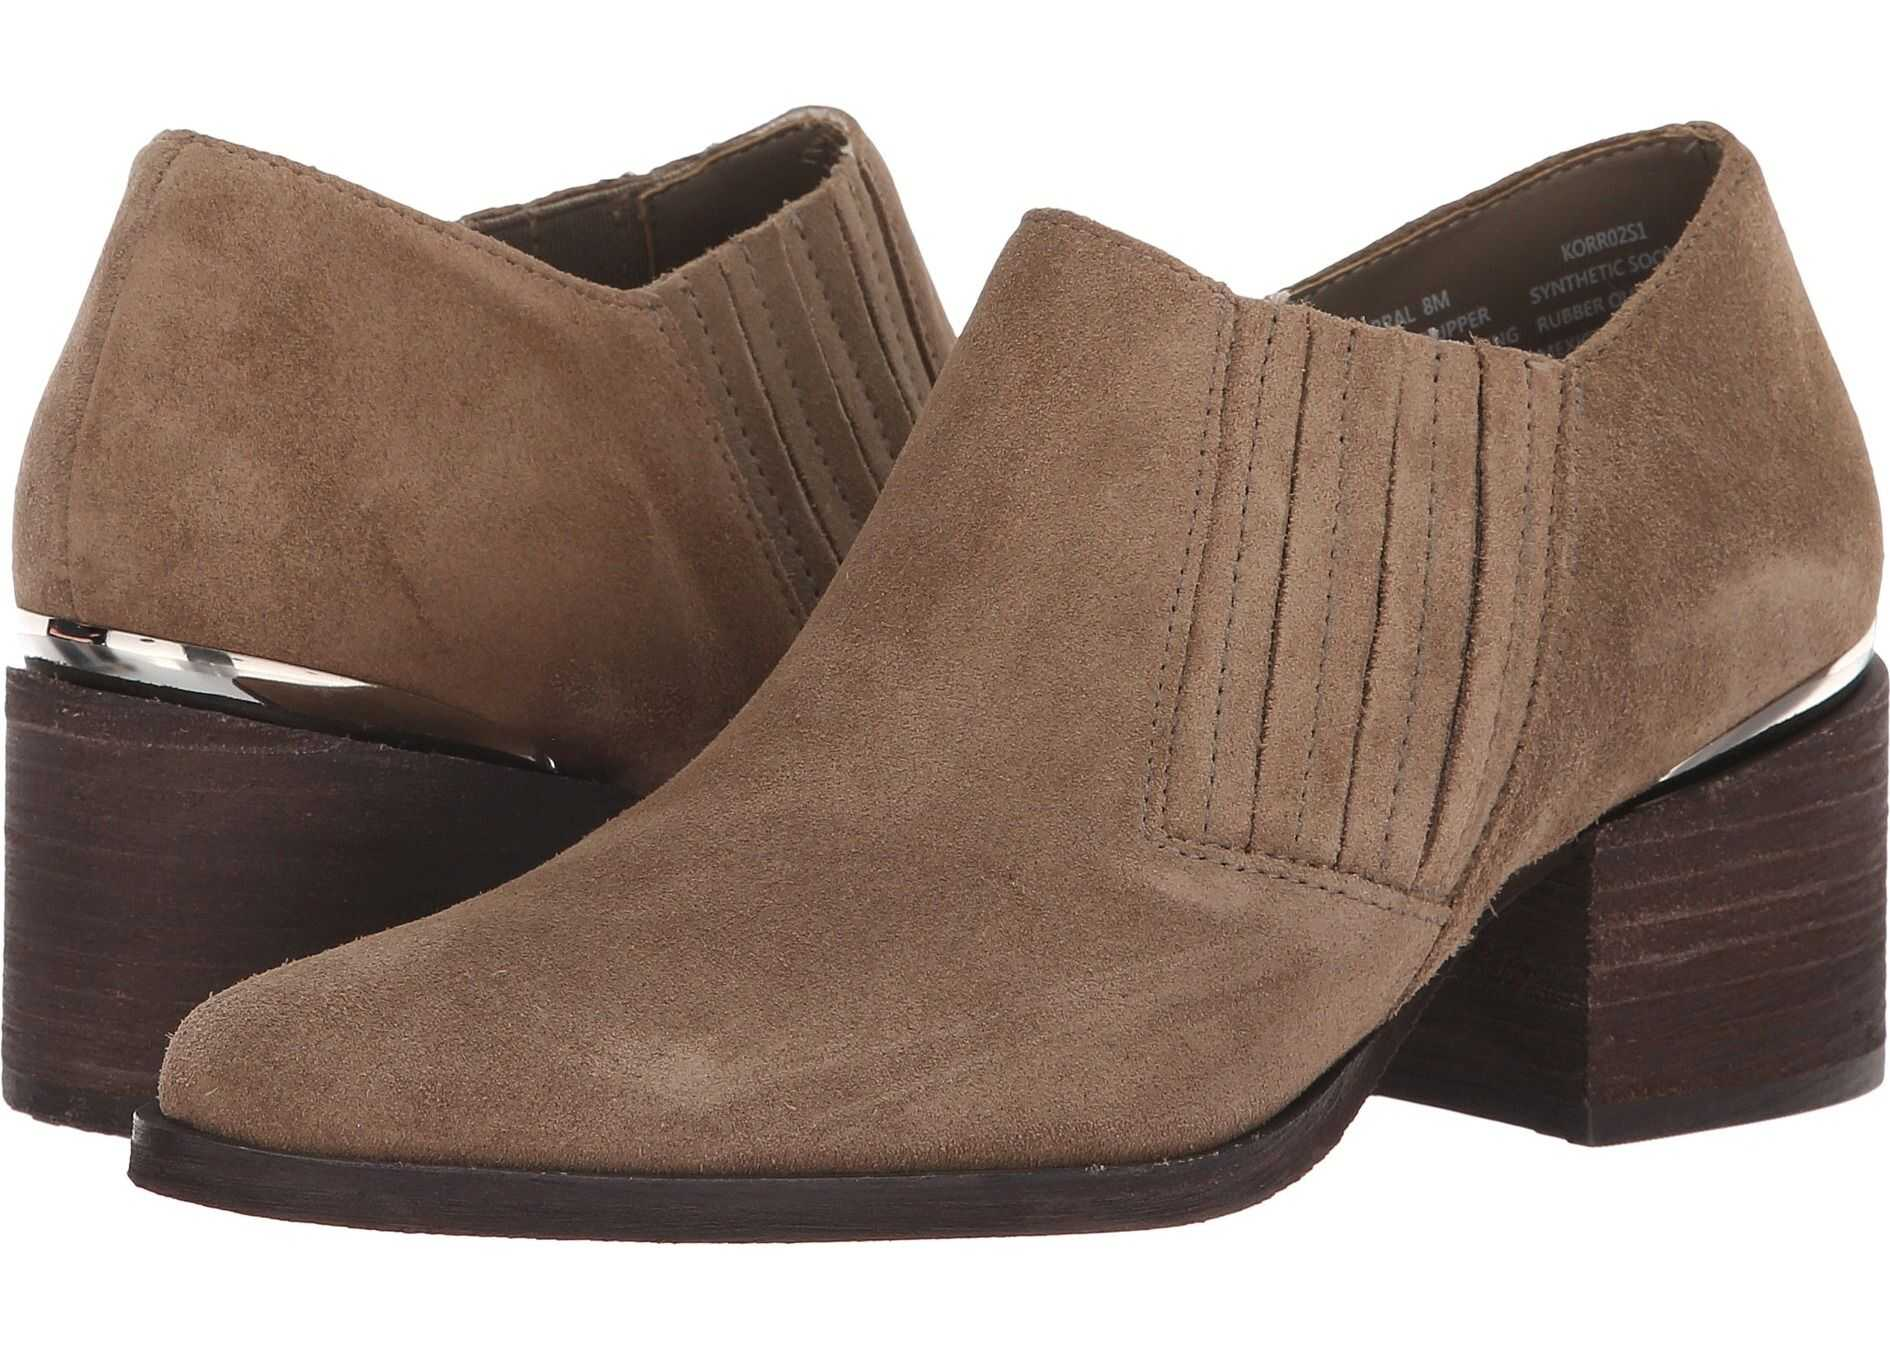 Steve Madden Korral Bootie Taupe Suede